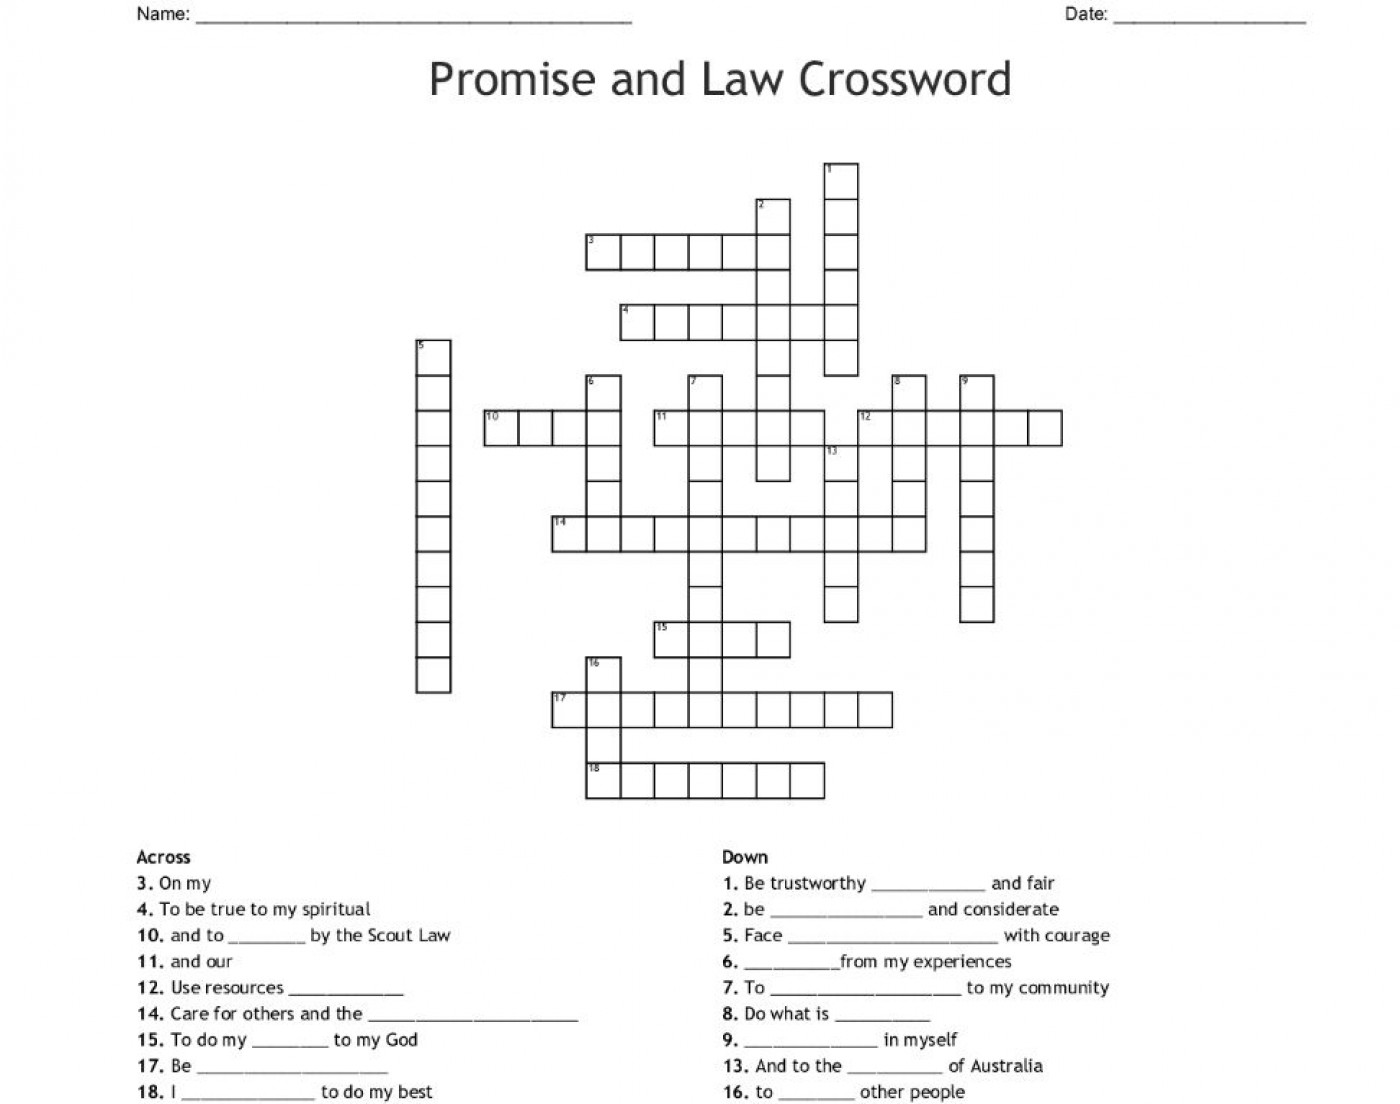 003 Fascinating Promise Crossword Clue High Resolution  Go Back On A 6 Letter 3 Of Marriage 91400